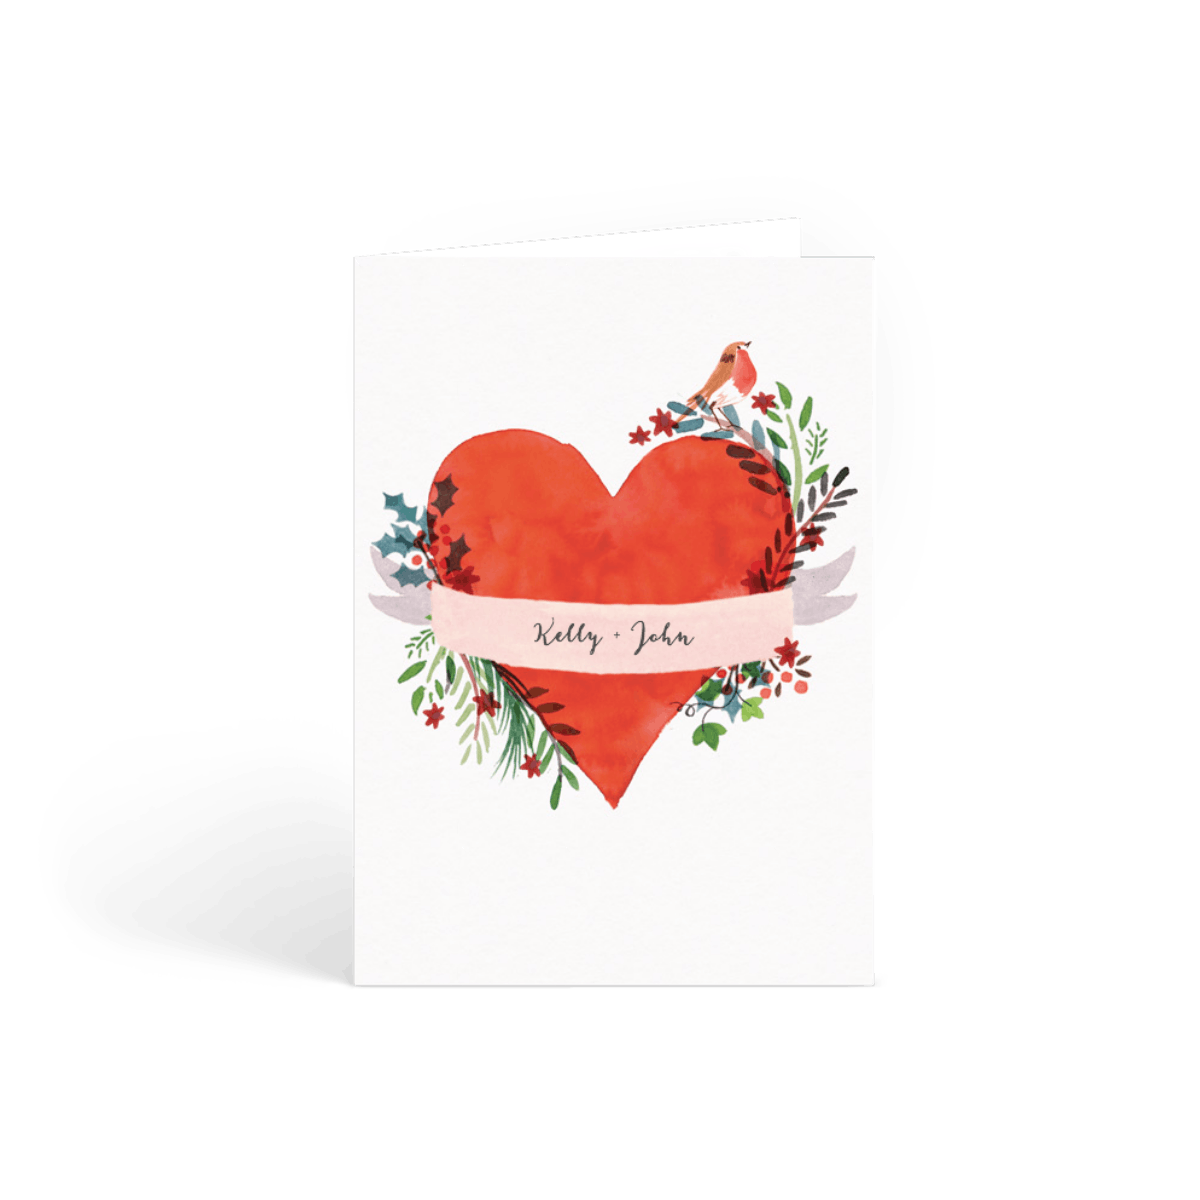 Https%3a%2f%2fwww.papier.com%2fproduct image%2f8570%2f2%2fwinter heart 2129 front 1484912032.png?ixlib=rb 1.1